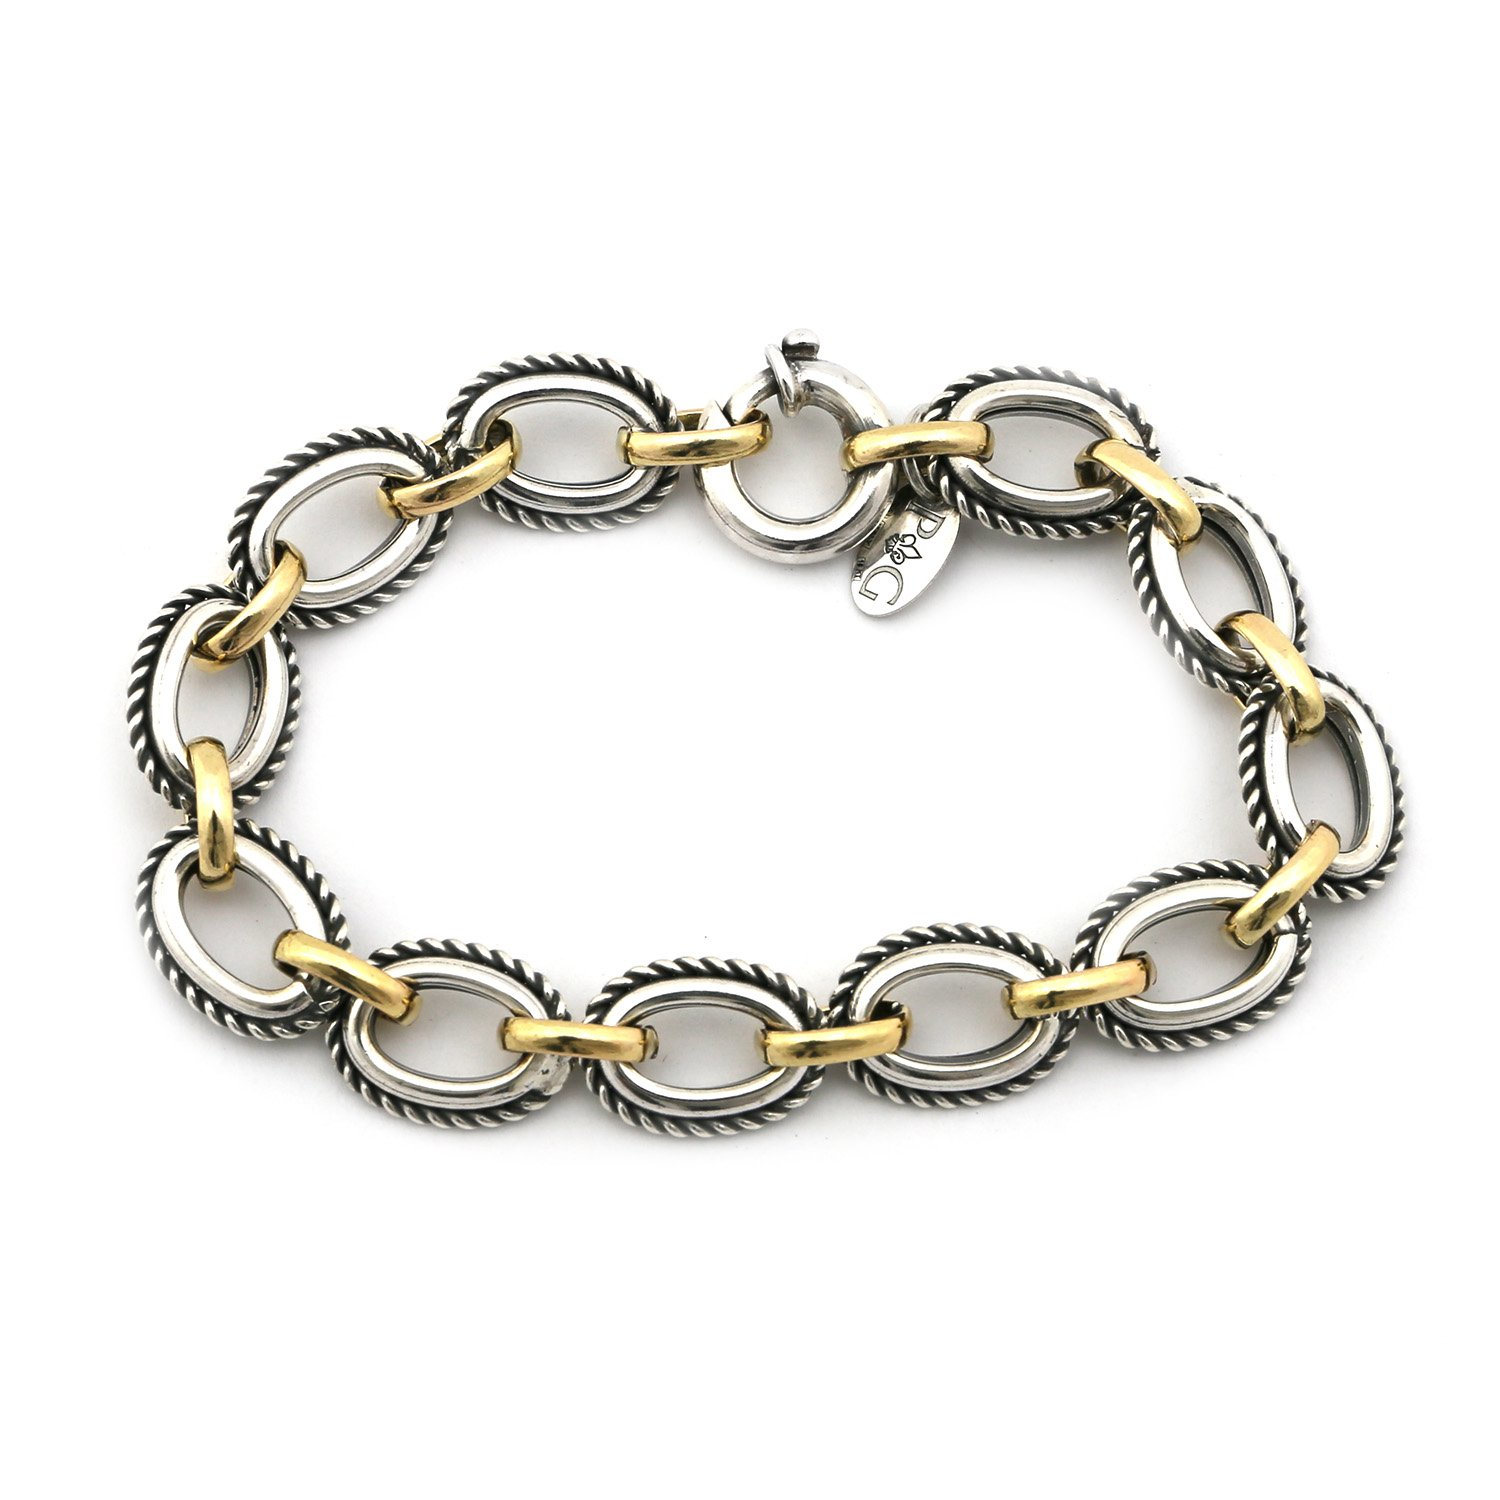 """18k Yellow Gold & Sterling Silver Textured 11mm thick Oval Links Italian Cable 8"""" Chain Bracelet"""